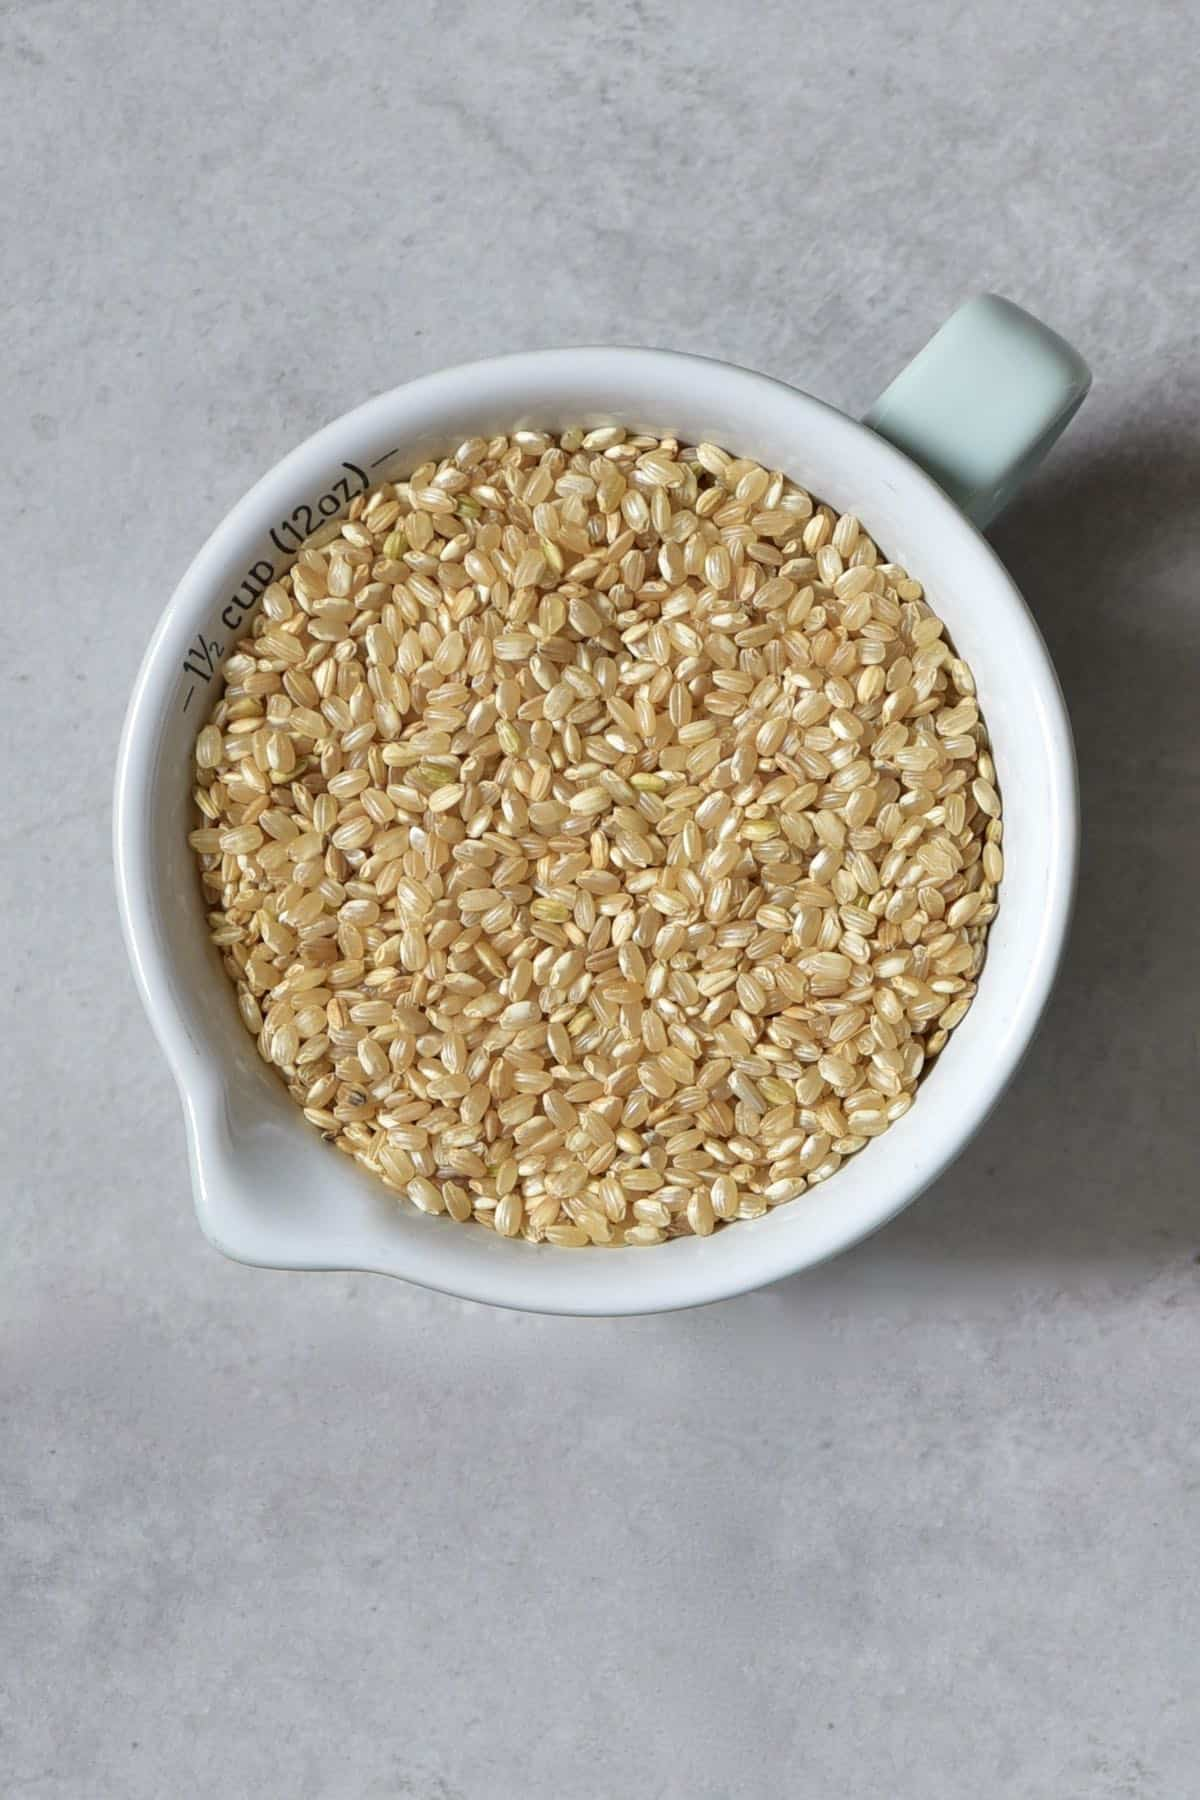 A half cup of brown rice